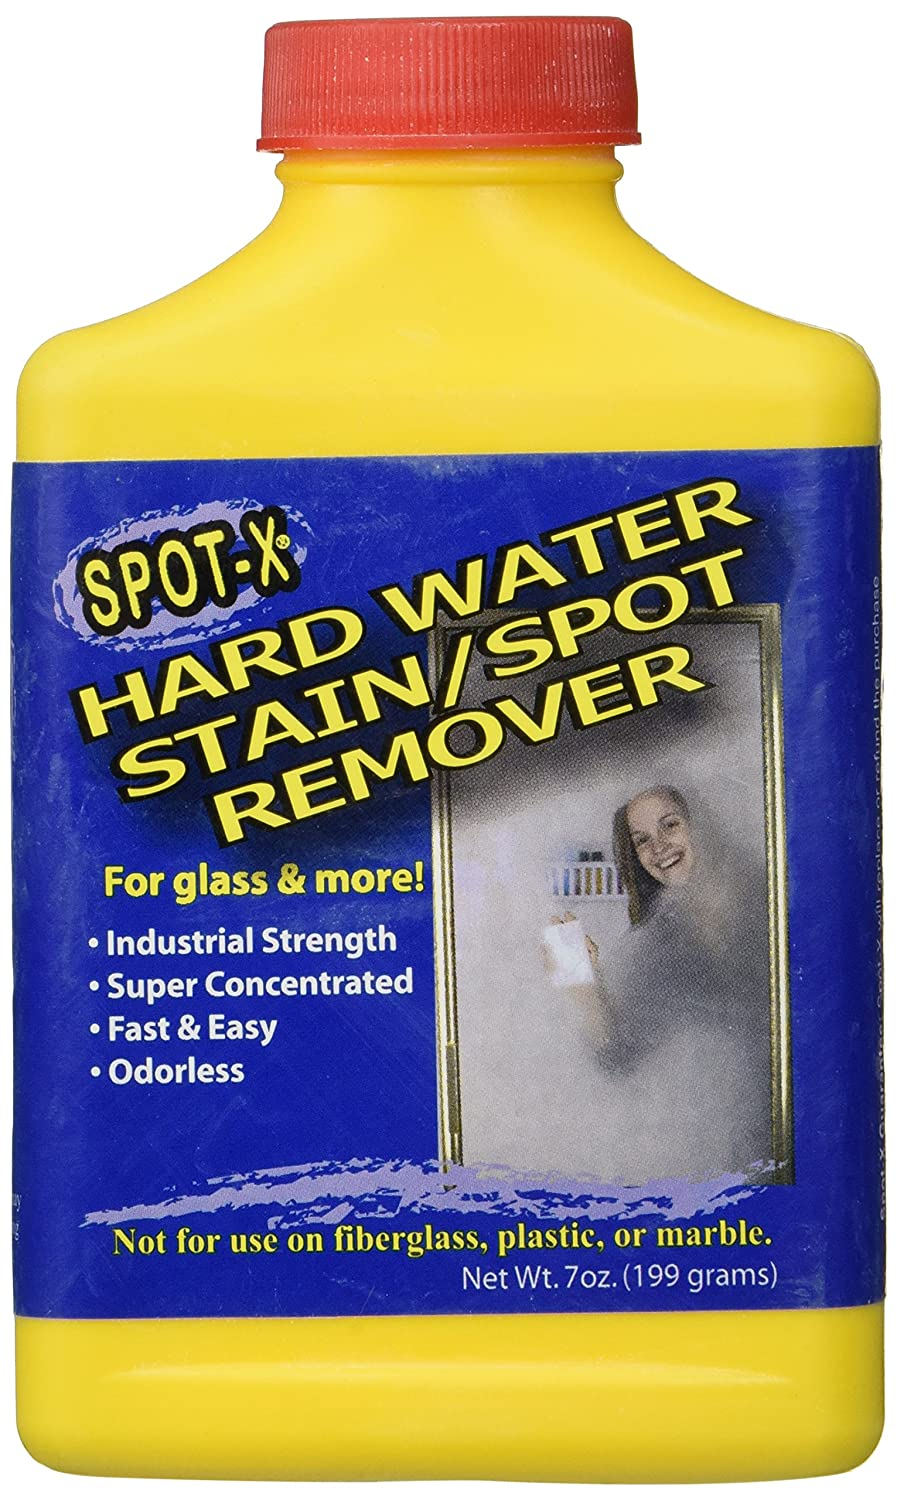 Amazon.com: Spot-X Hard Water Stain/Spot Remover - 7 Ounces ...